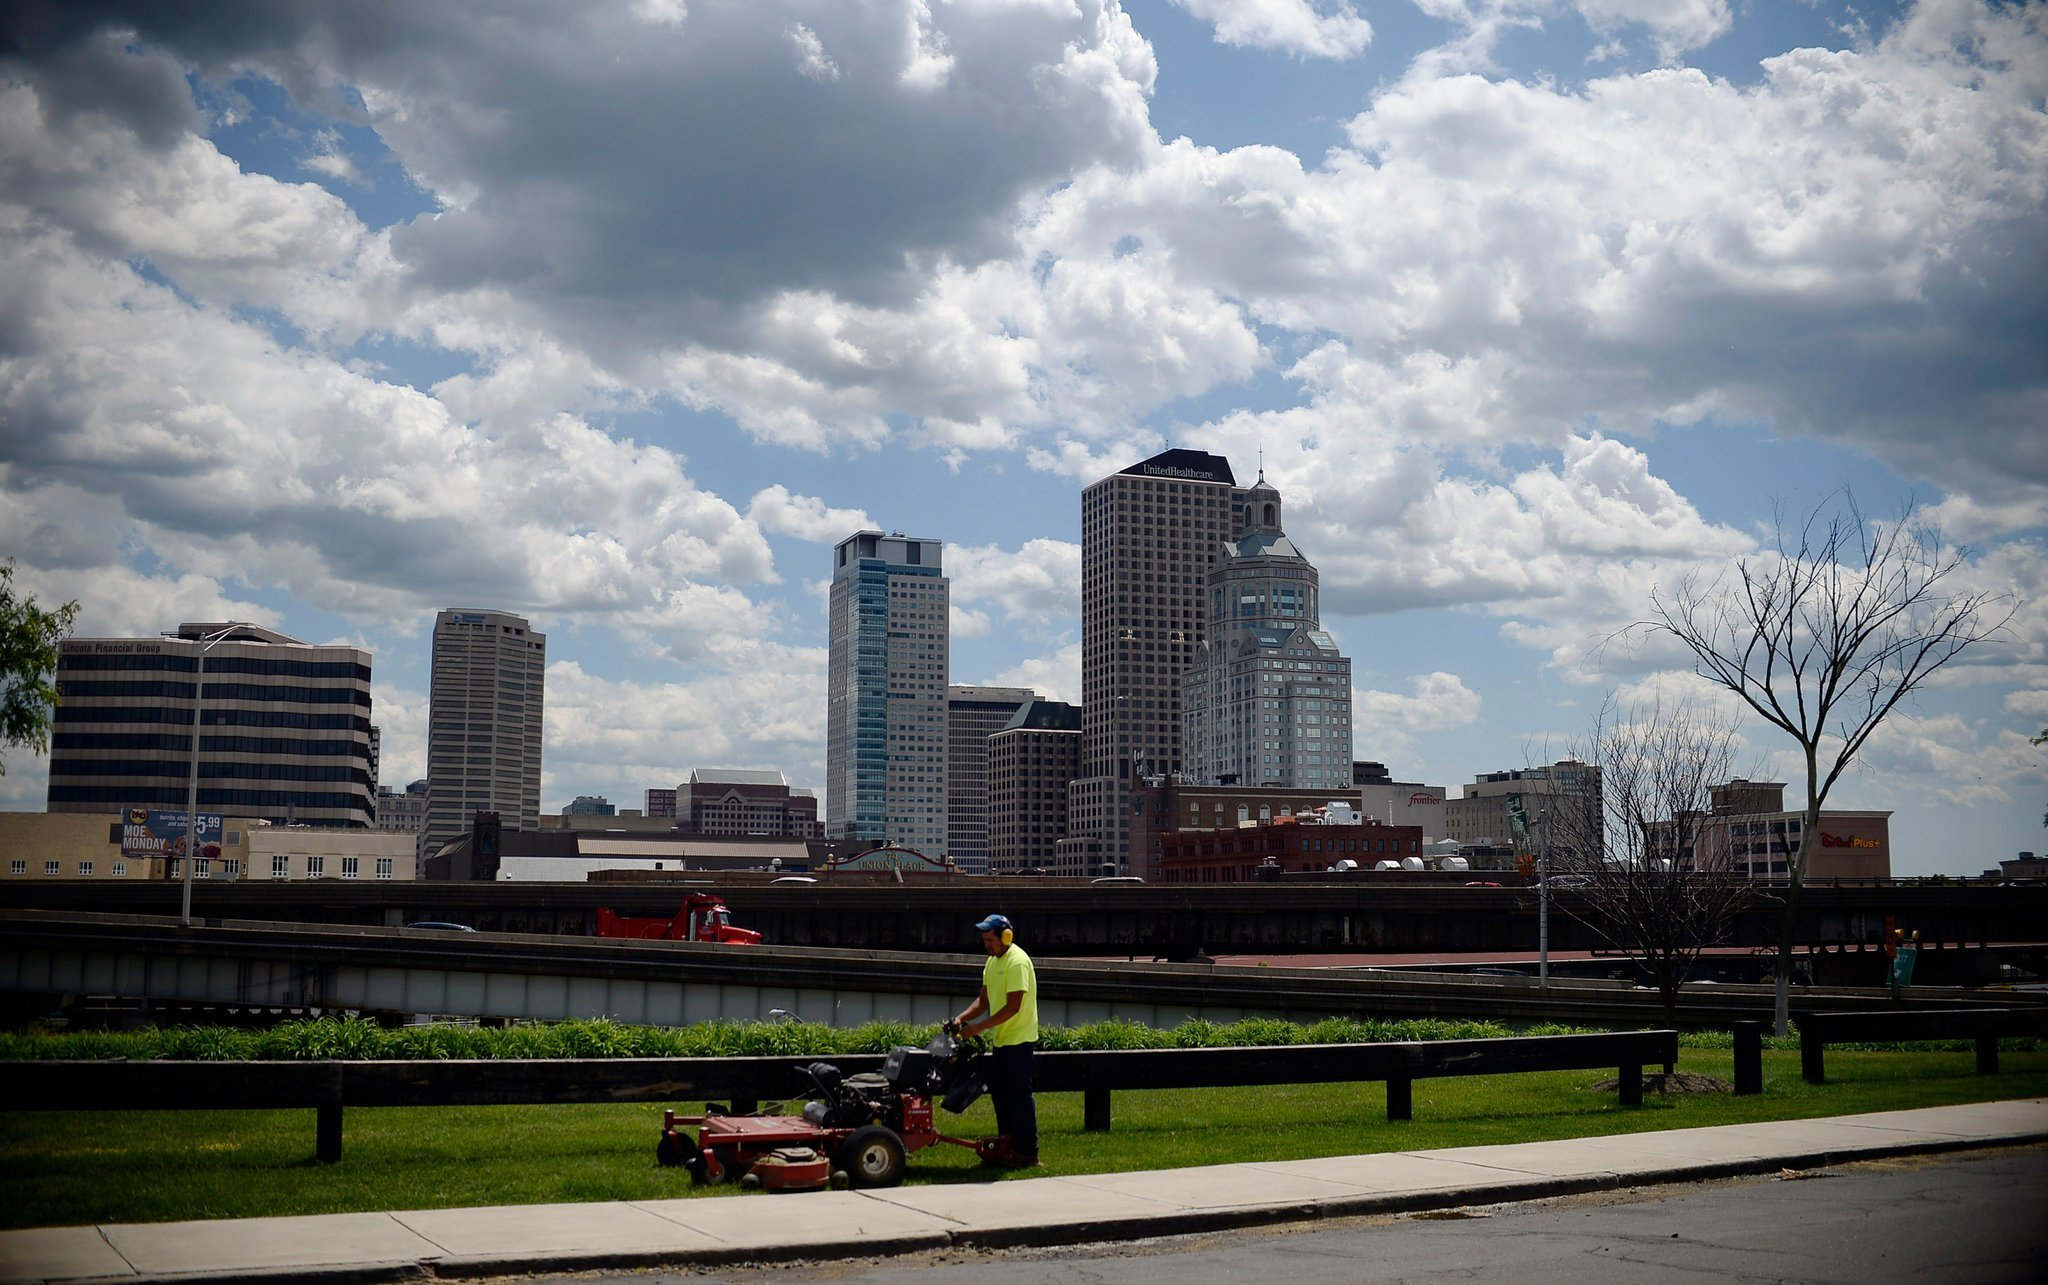 Is Hartford The Next City To Go Bankrupt? 2